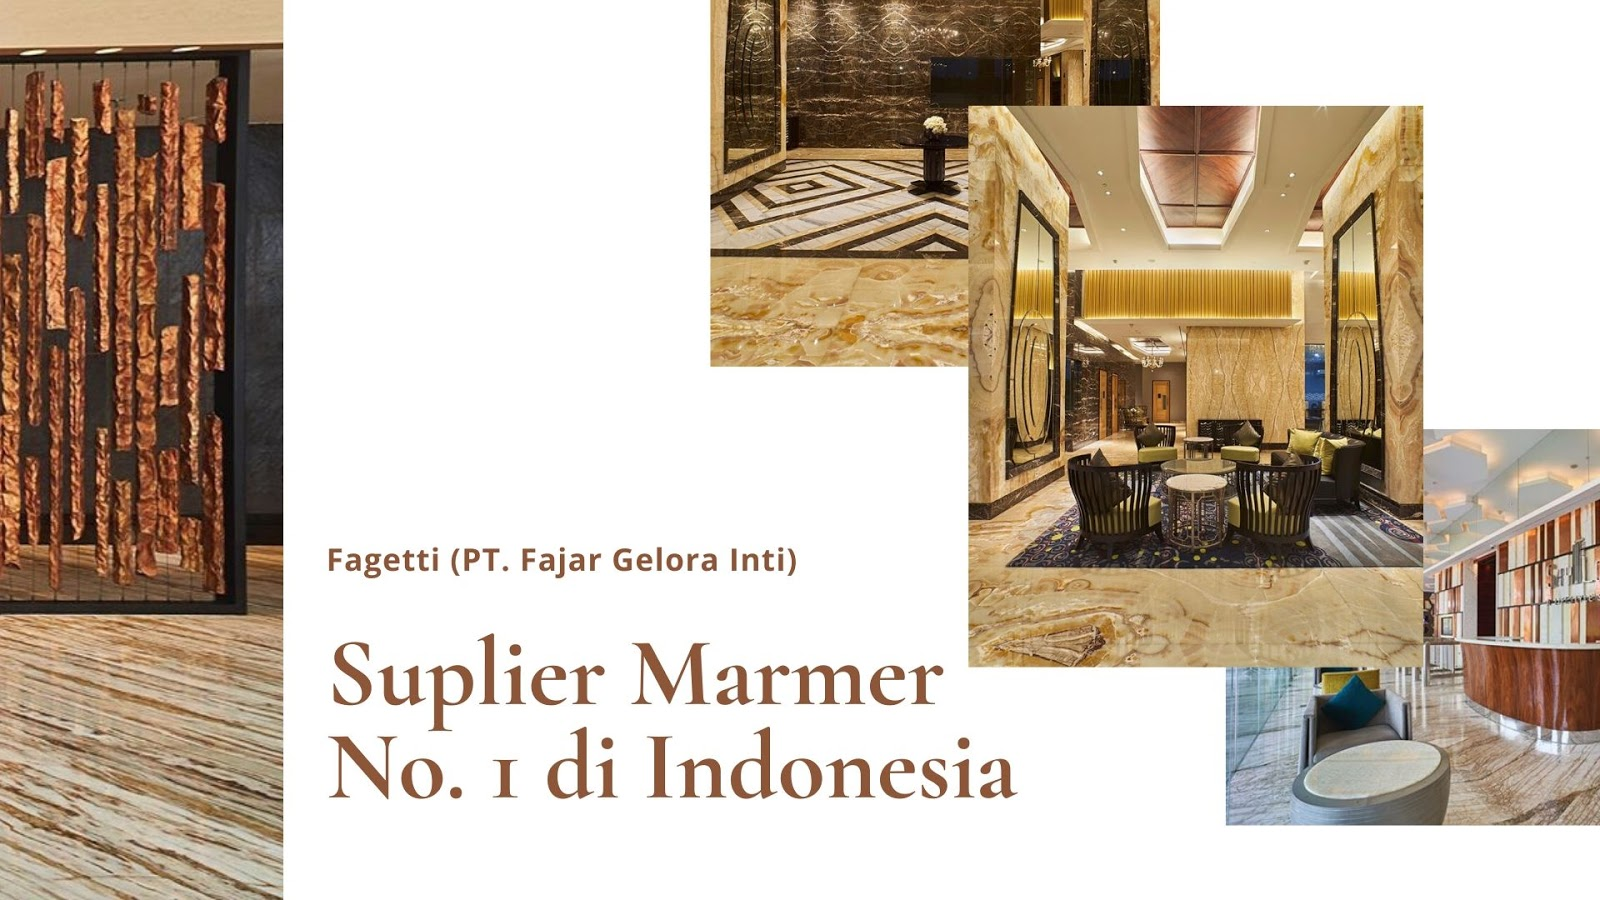 suplier marmer no 1 di indonesia